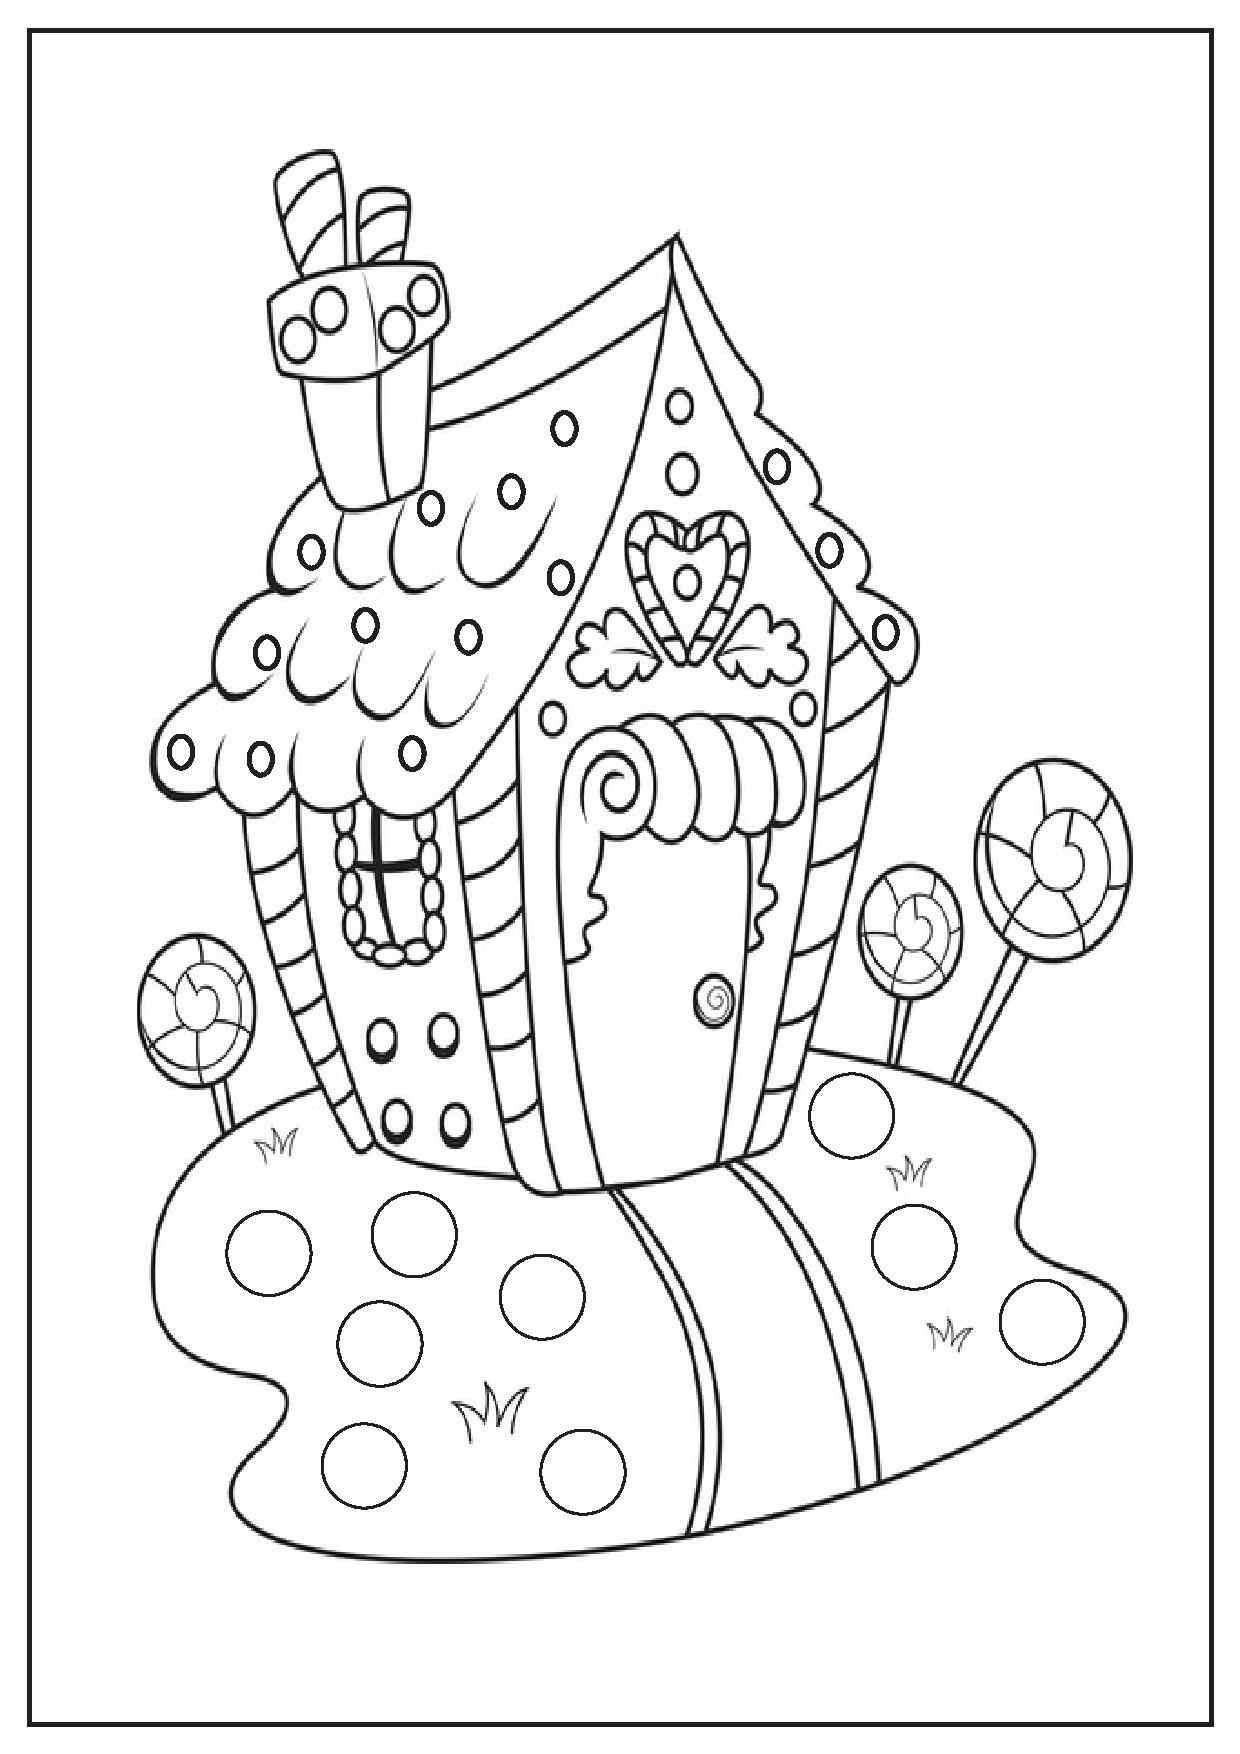 Christmas coloring activities printable - Find This Pin And More On Coloring Teacher Designed Classroom Ready Christmas Coloring Pages Printables And Resources